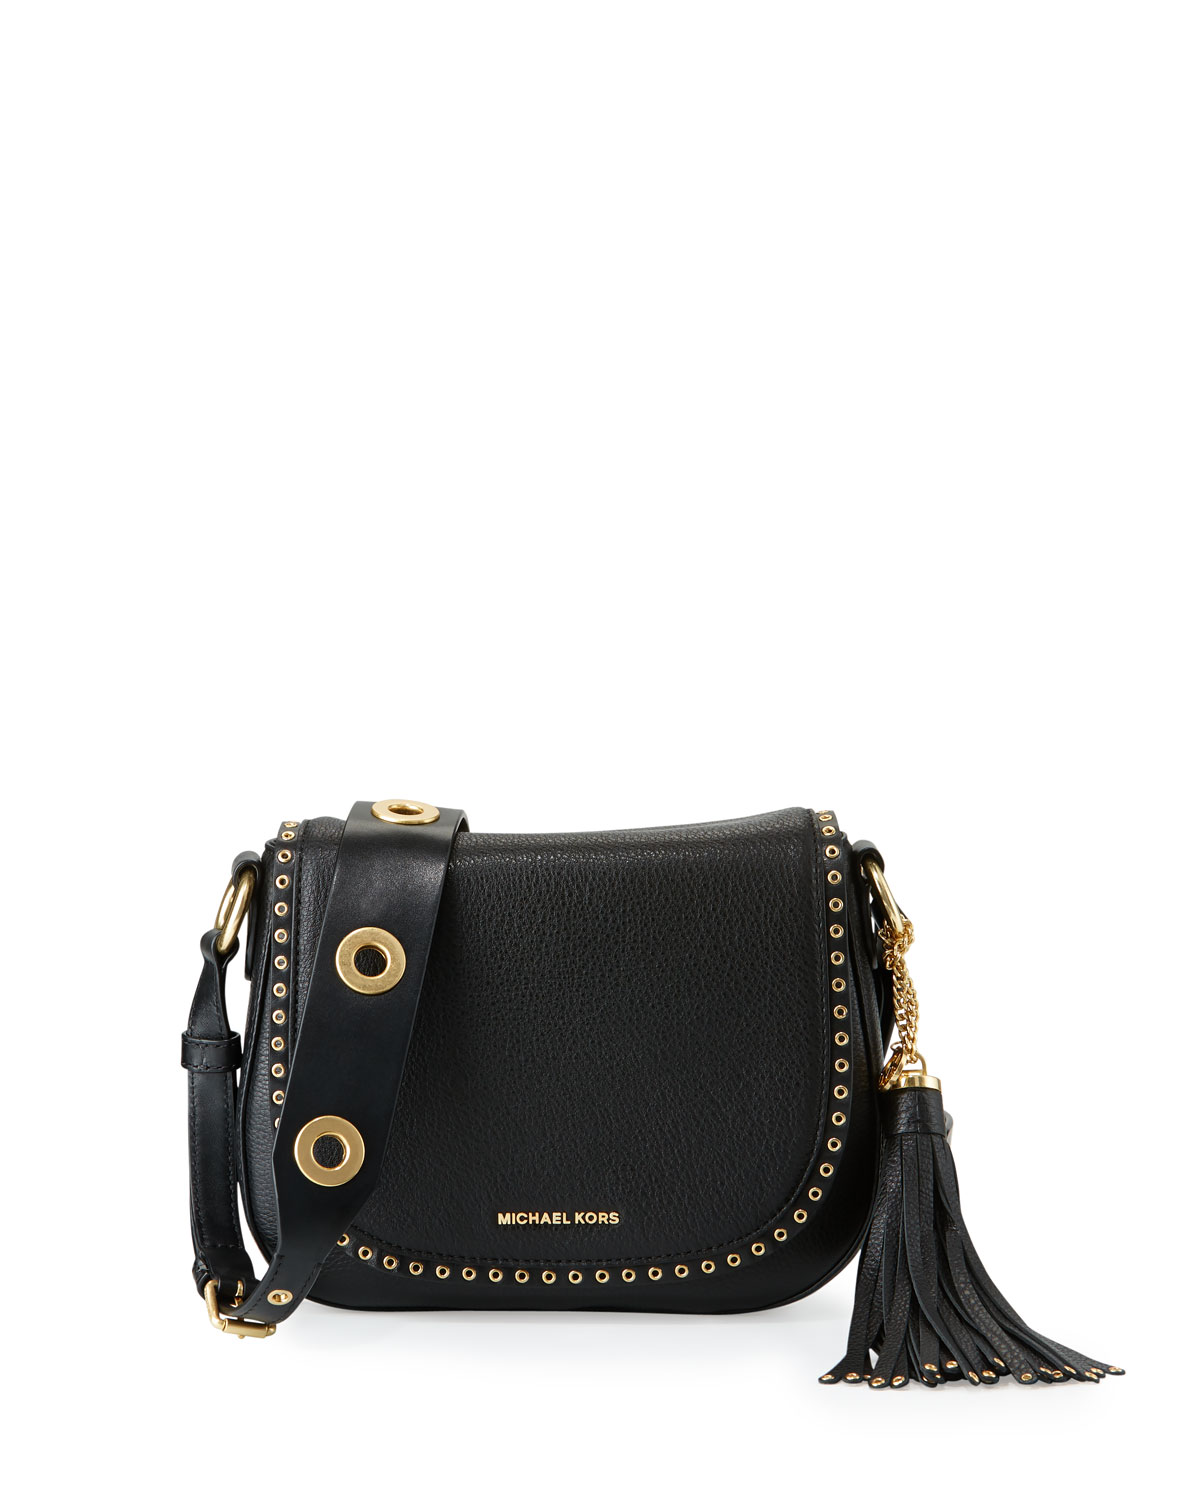 b98597931e29 MICHAEL Michael Kors Brooklyn Medium Leather Saddle Bag, Black ...